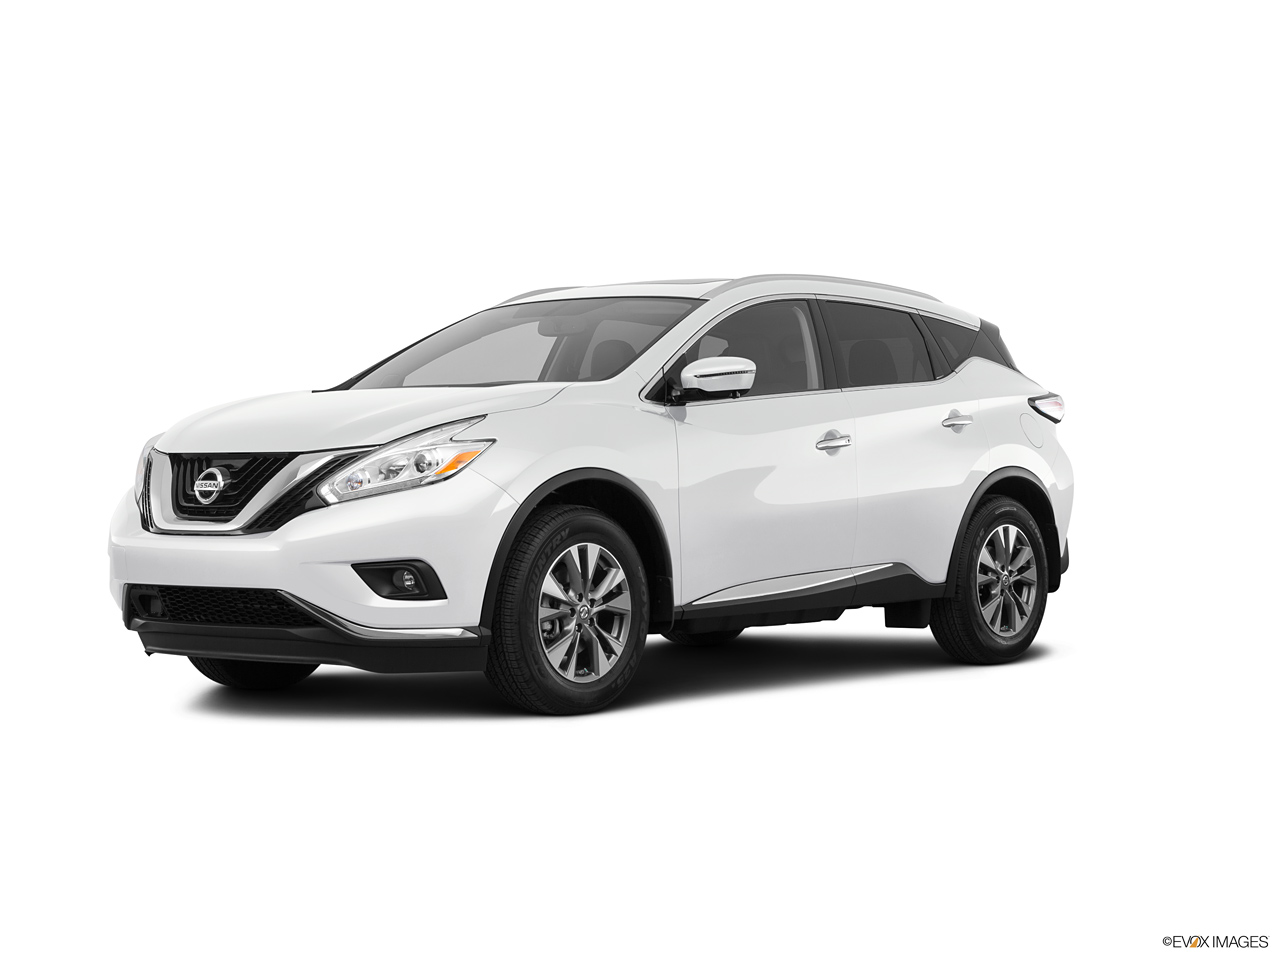 nissan murano 2017 3 5l le in kuwait new car prices specs reviews photos yallamotor. Black Bedroom Furniture Sets. Home Design Ideas